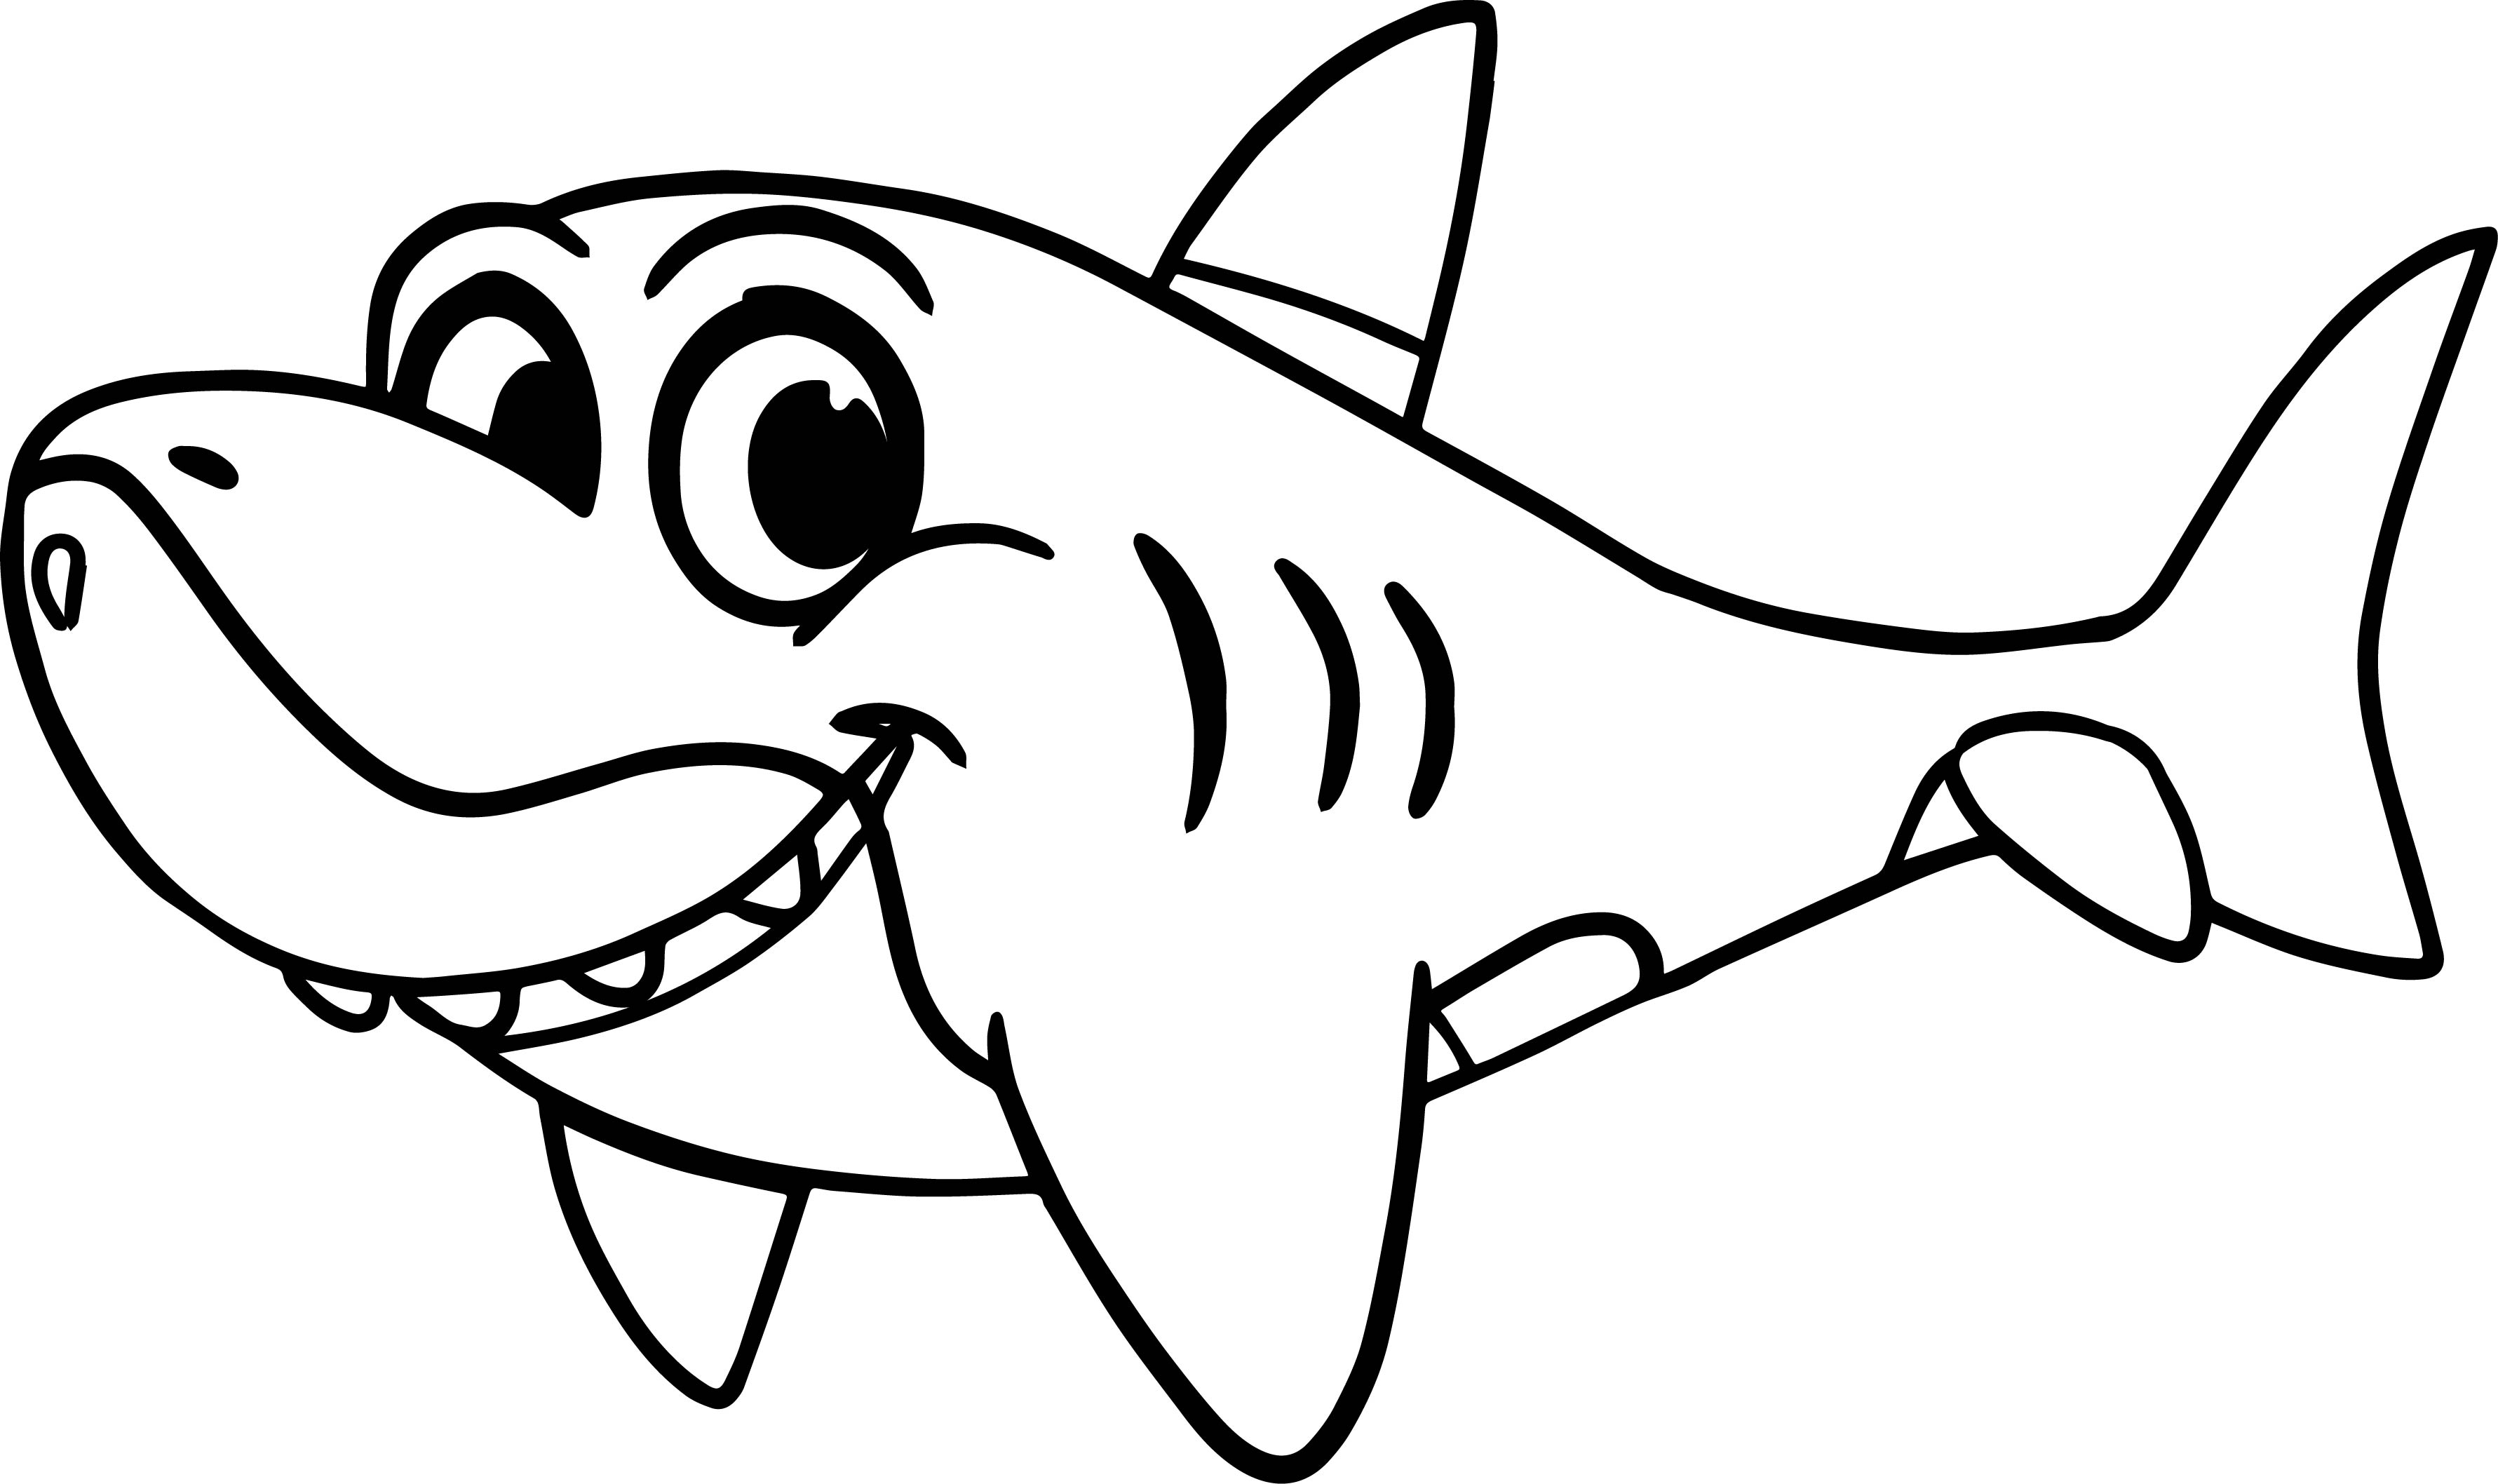 basic shark drawing at getdrawings com free for personal use basic